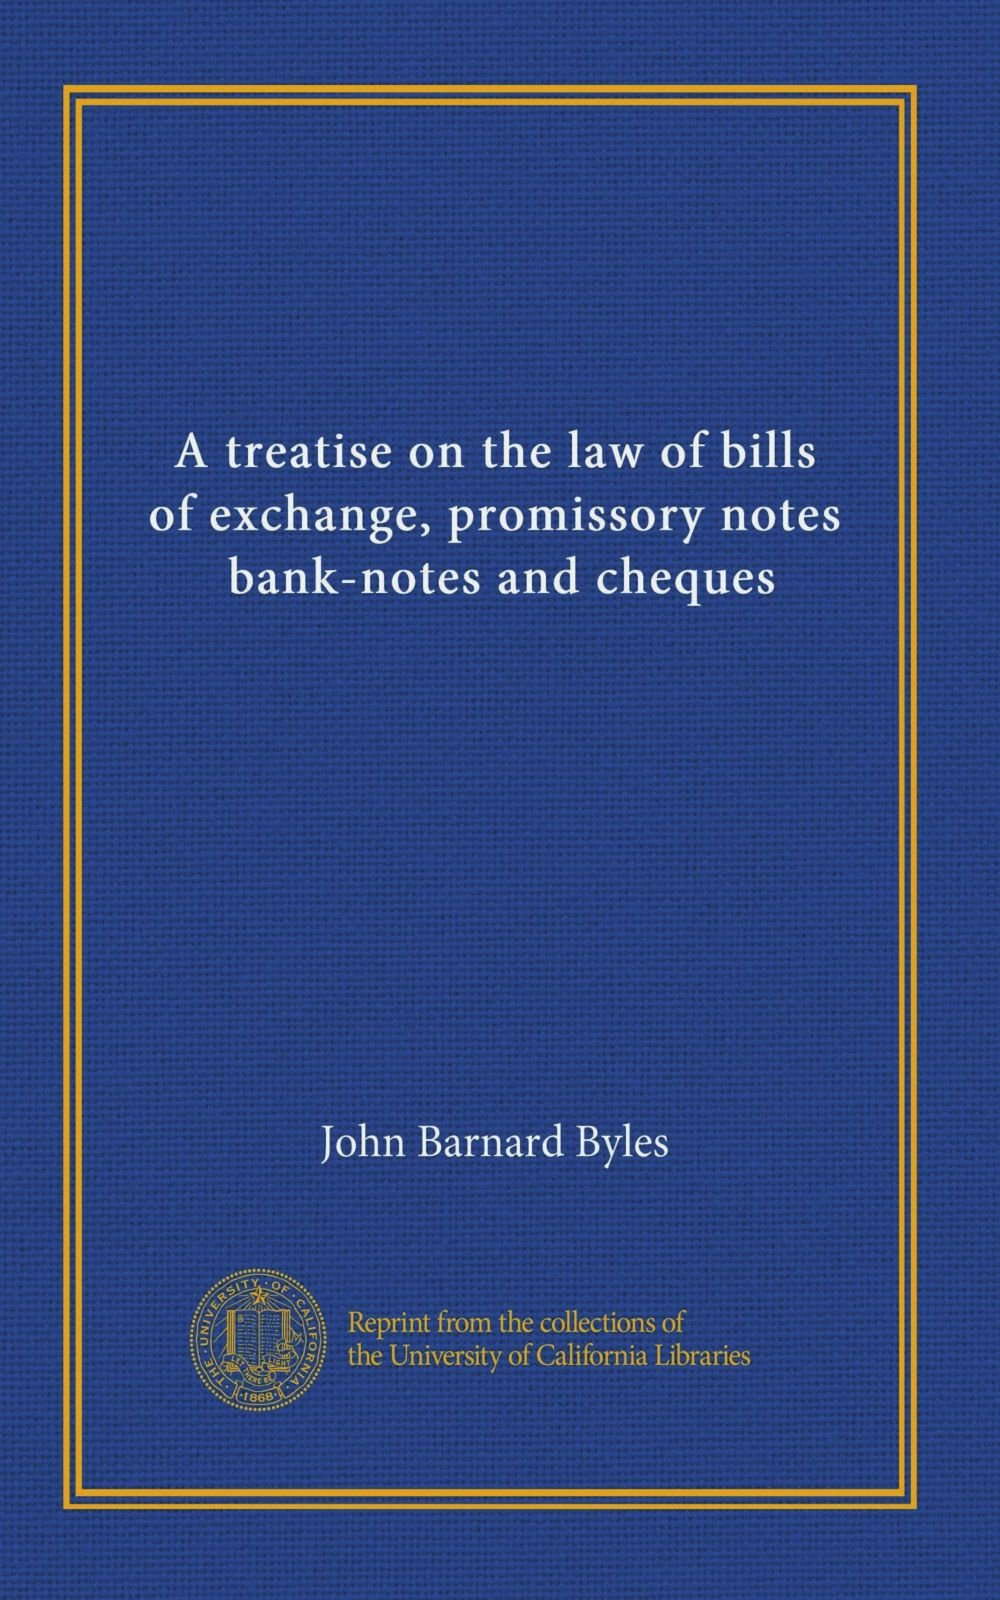 A treatise on the law of bills of exchange, promissory notes, bank-notes and cheques ebook